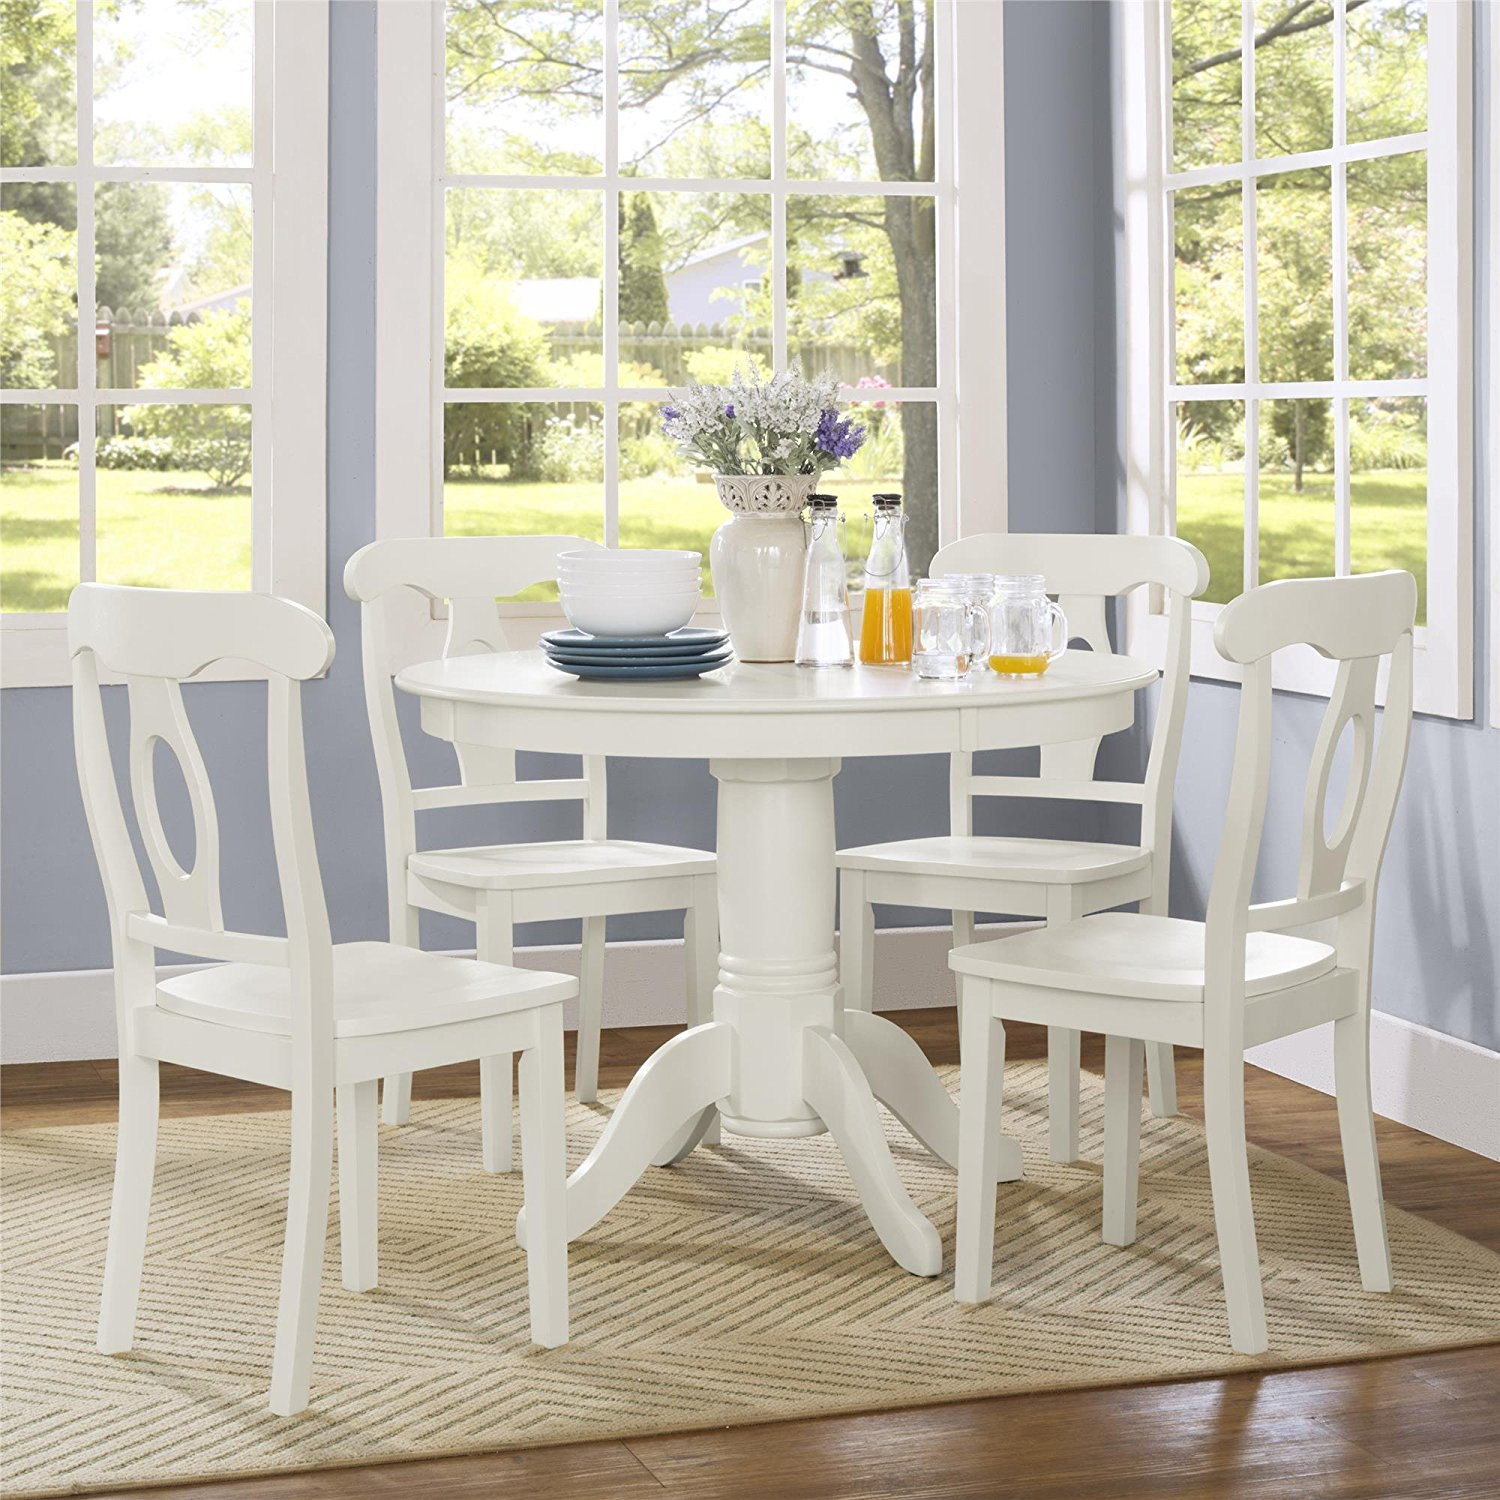 Dorel Living Aubrey 5 Piece Traditional Height Pedestal Dining Set, Creamy White